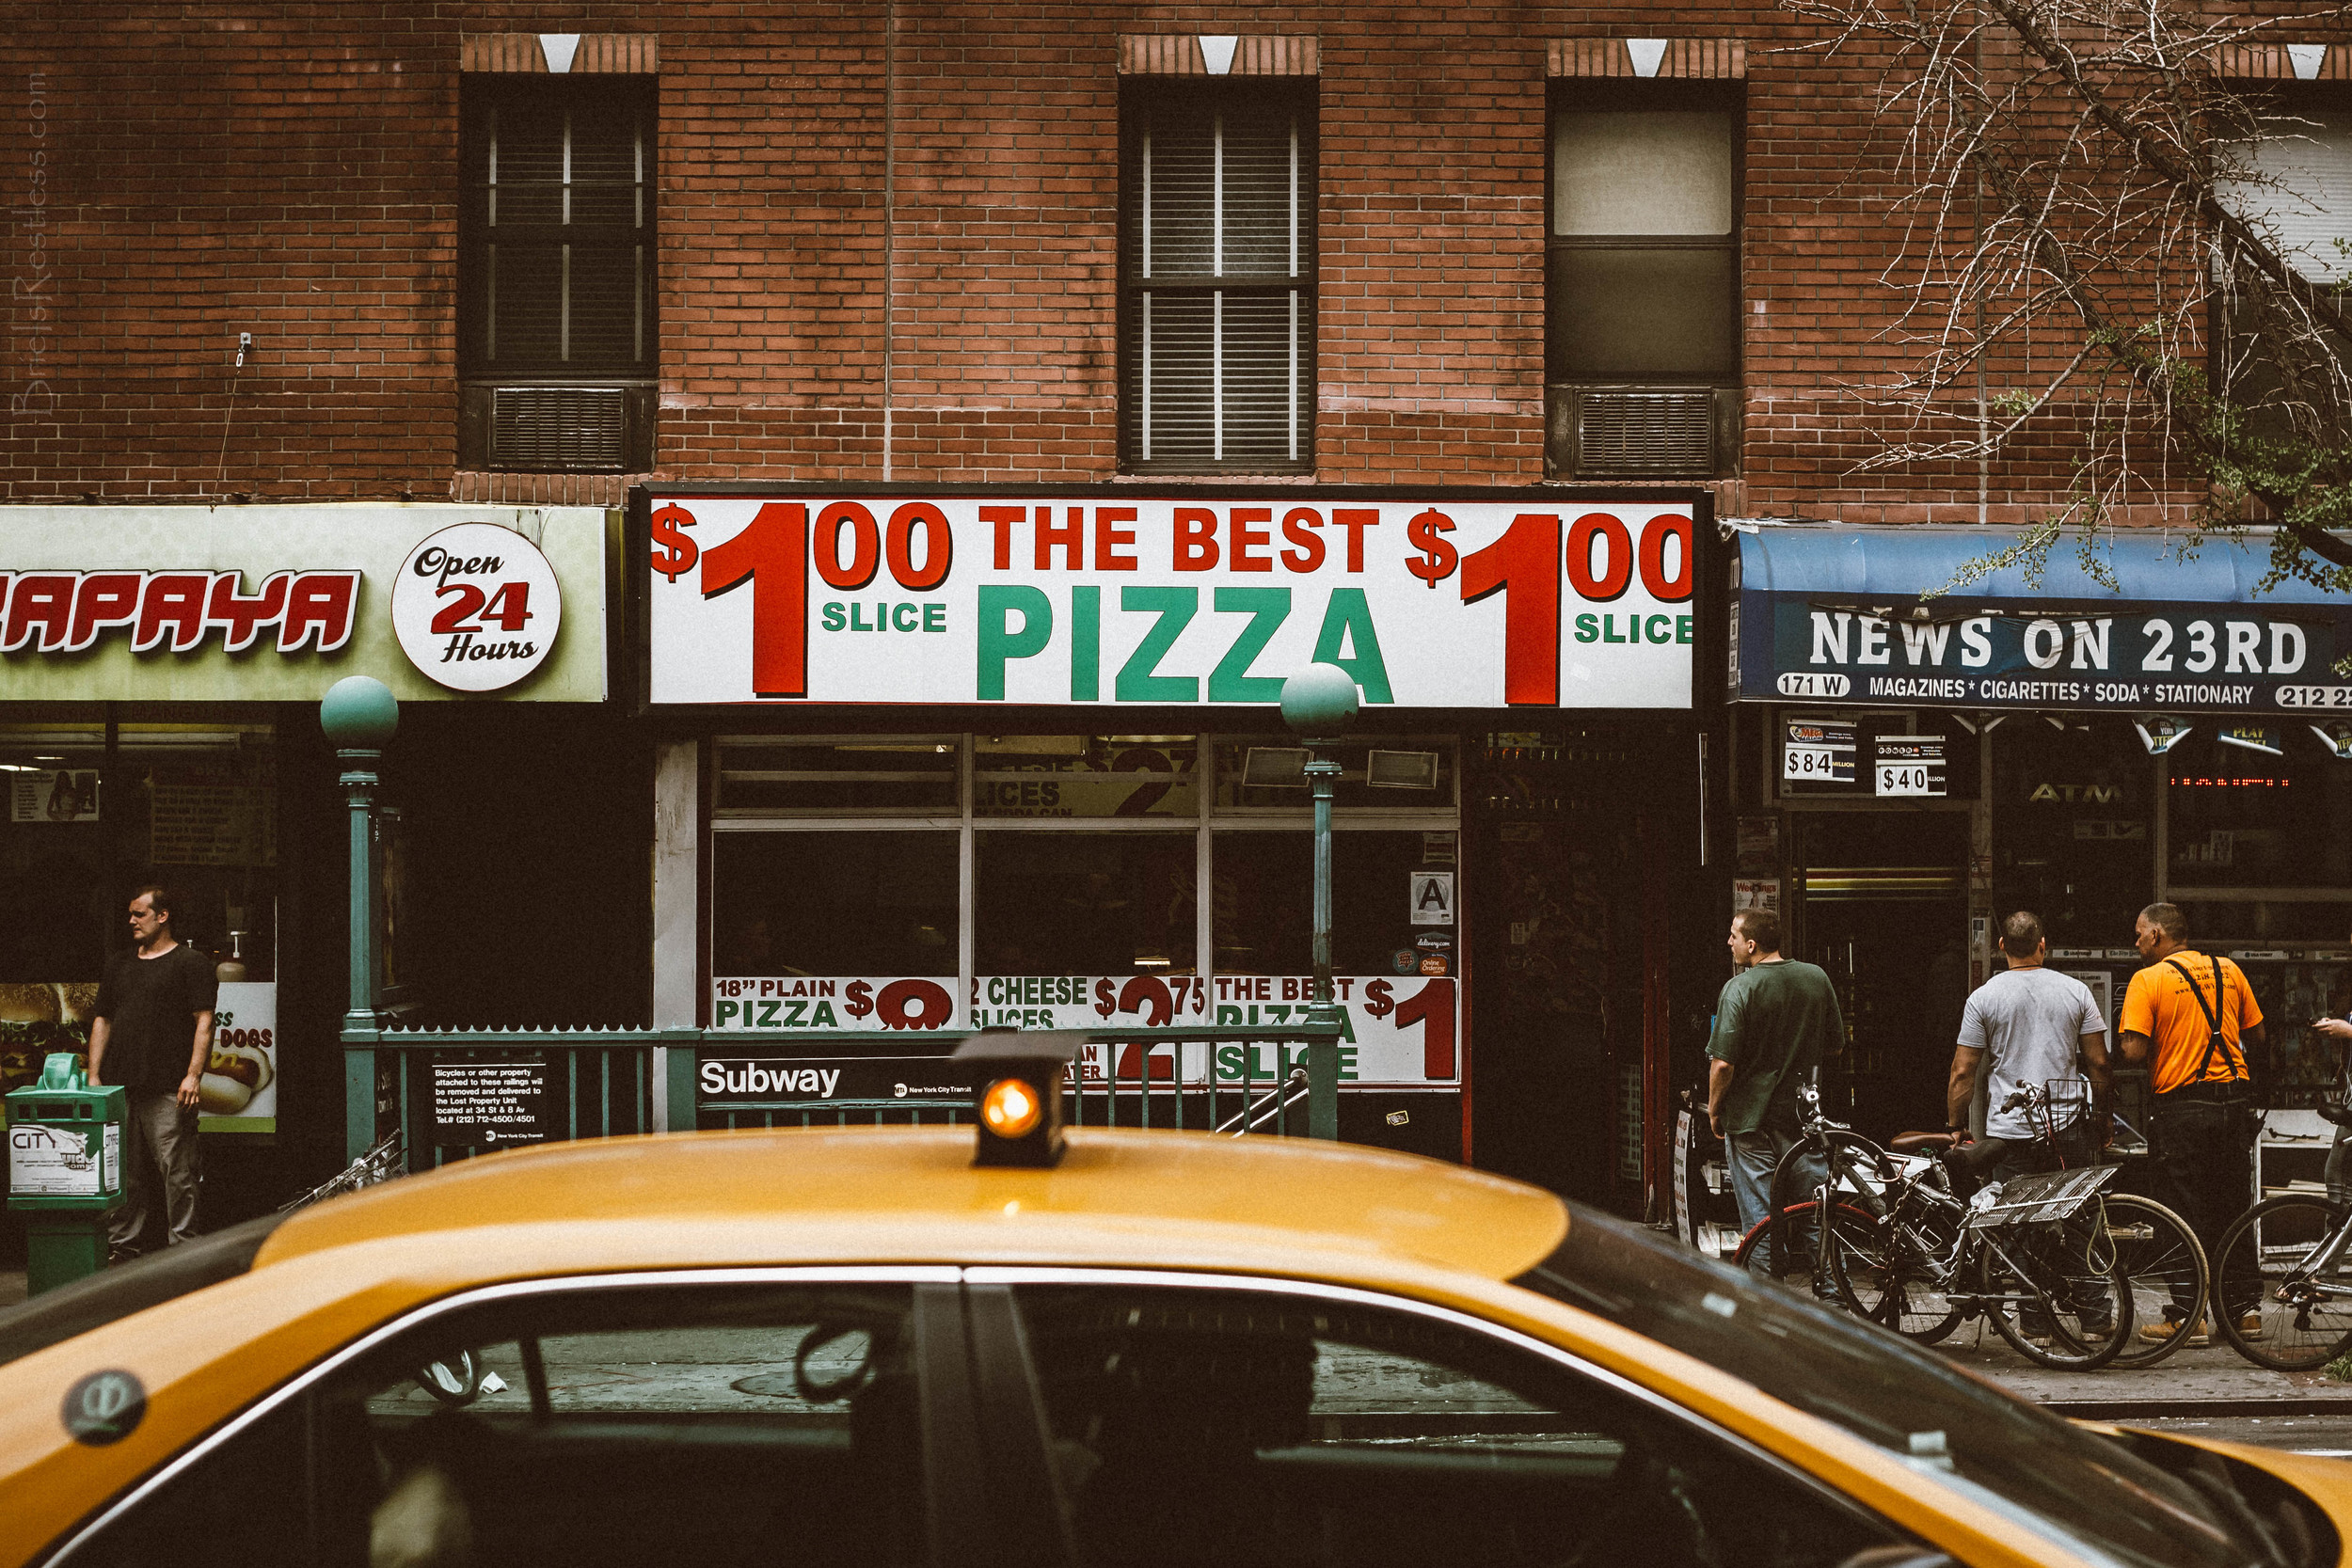 Dollar Pizza In Manhattan - NYC.jpg